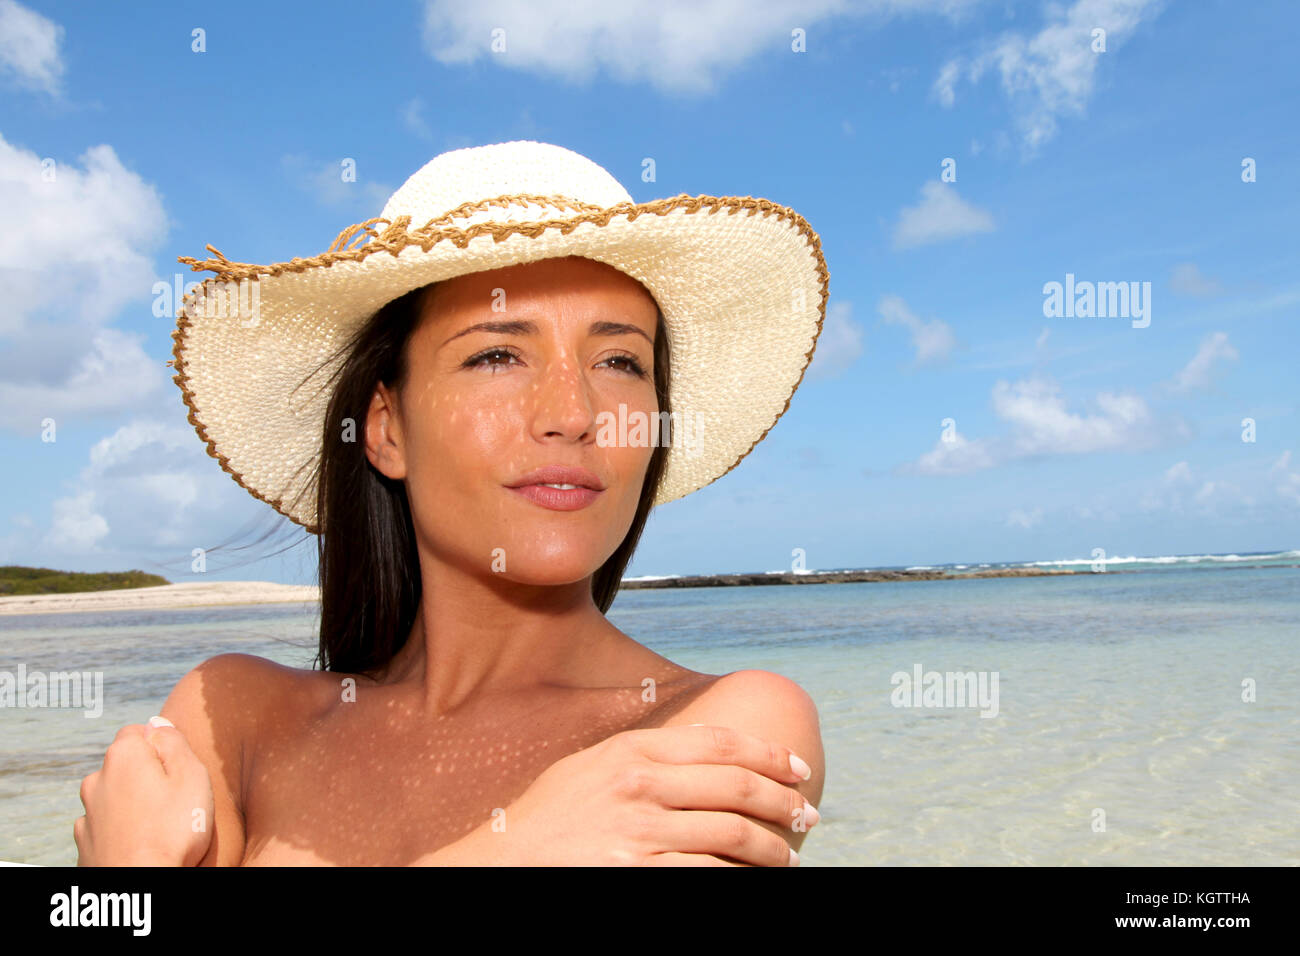 97c225ffdb903 Closeup of attractive woman wearing hat at the beach Stock Photo ...